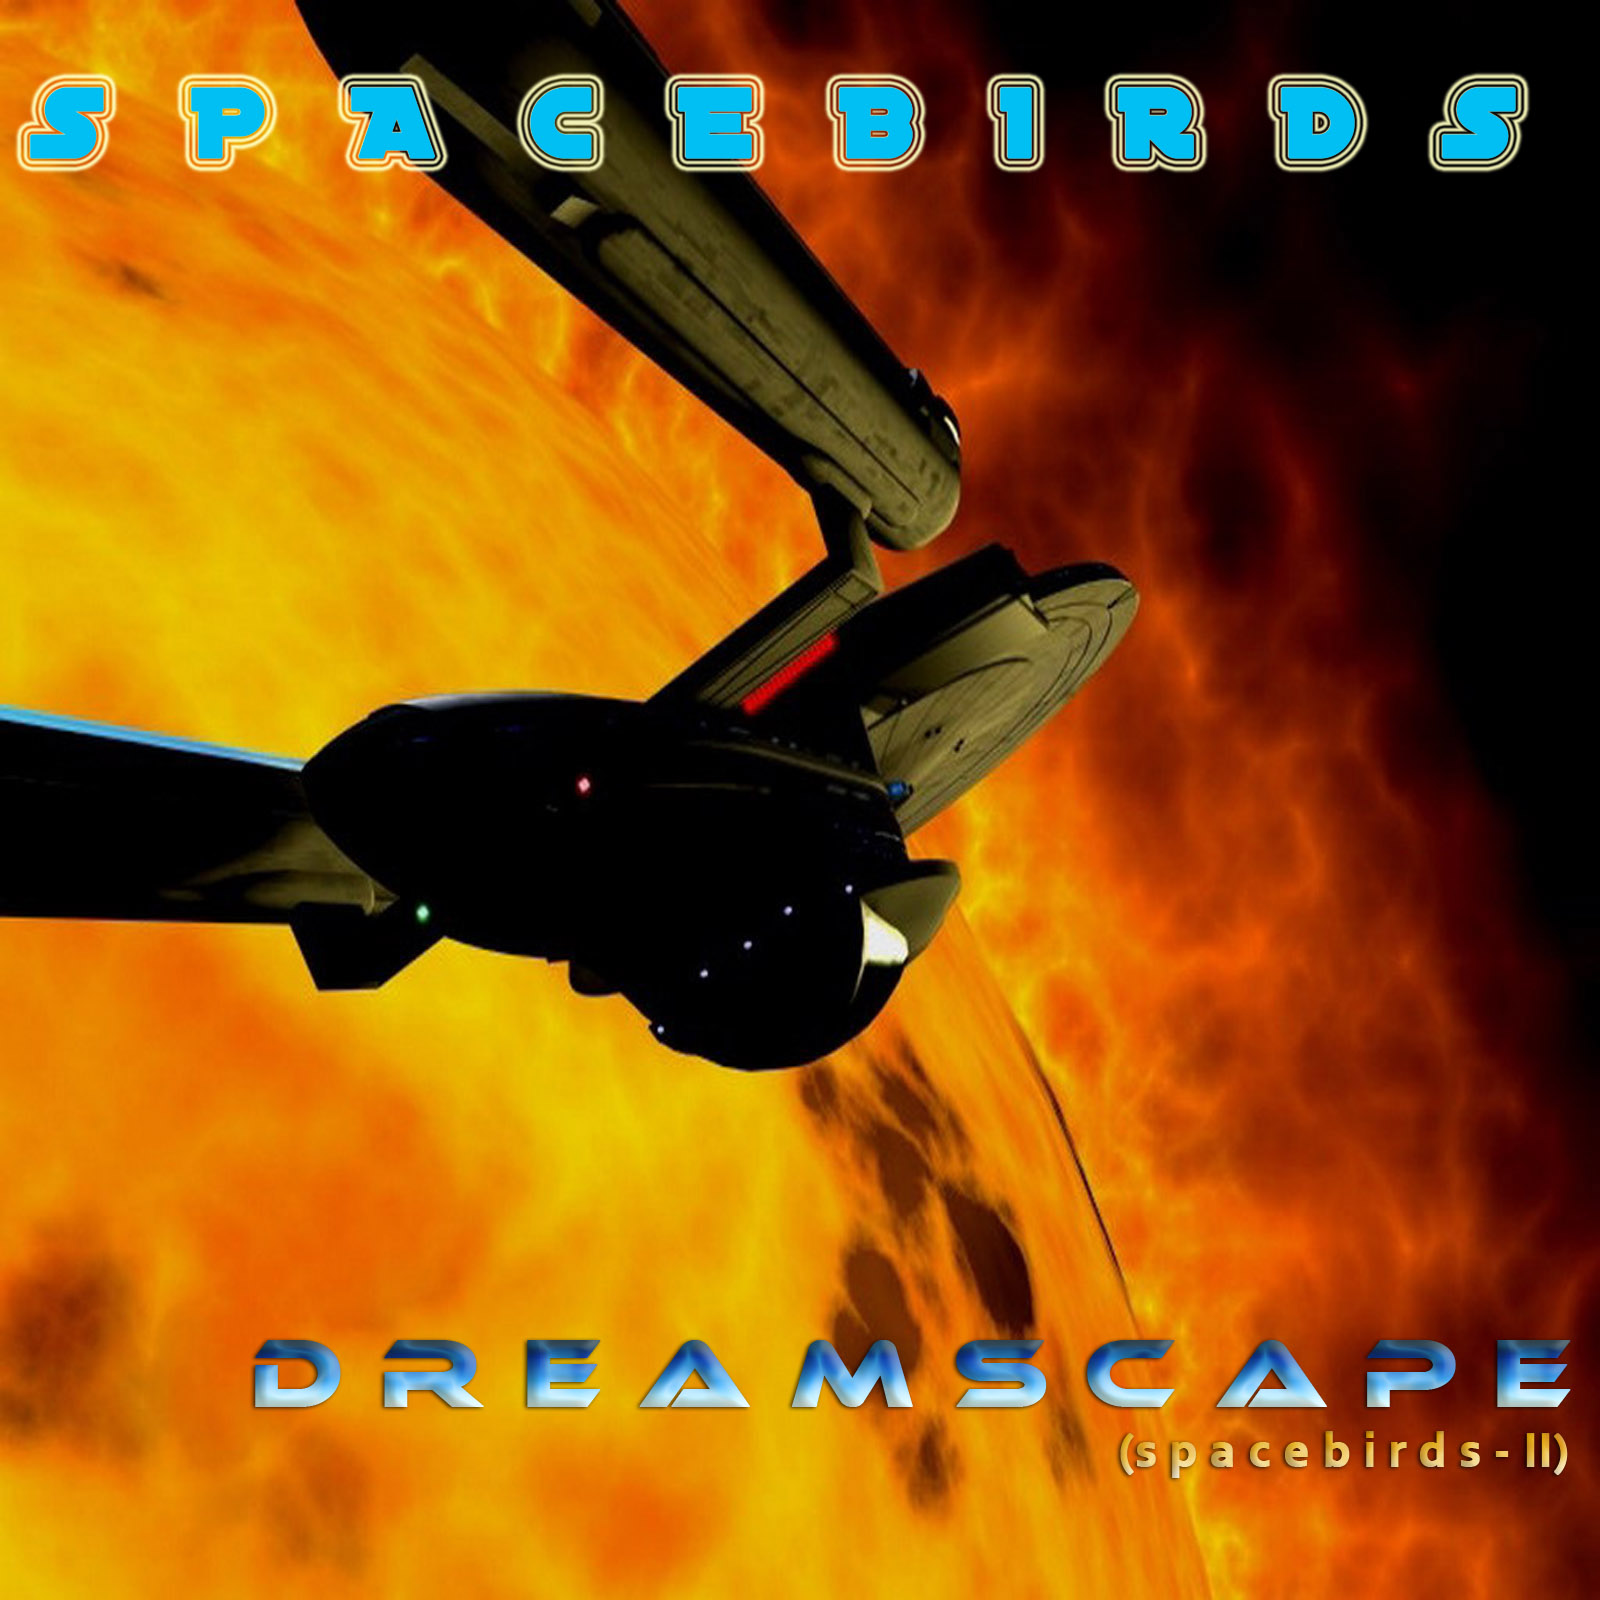 Spacebirds - Dreamscape (Spacebirds-II) (2010)